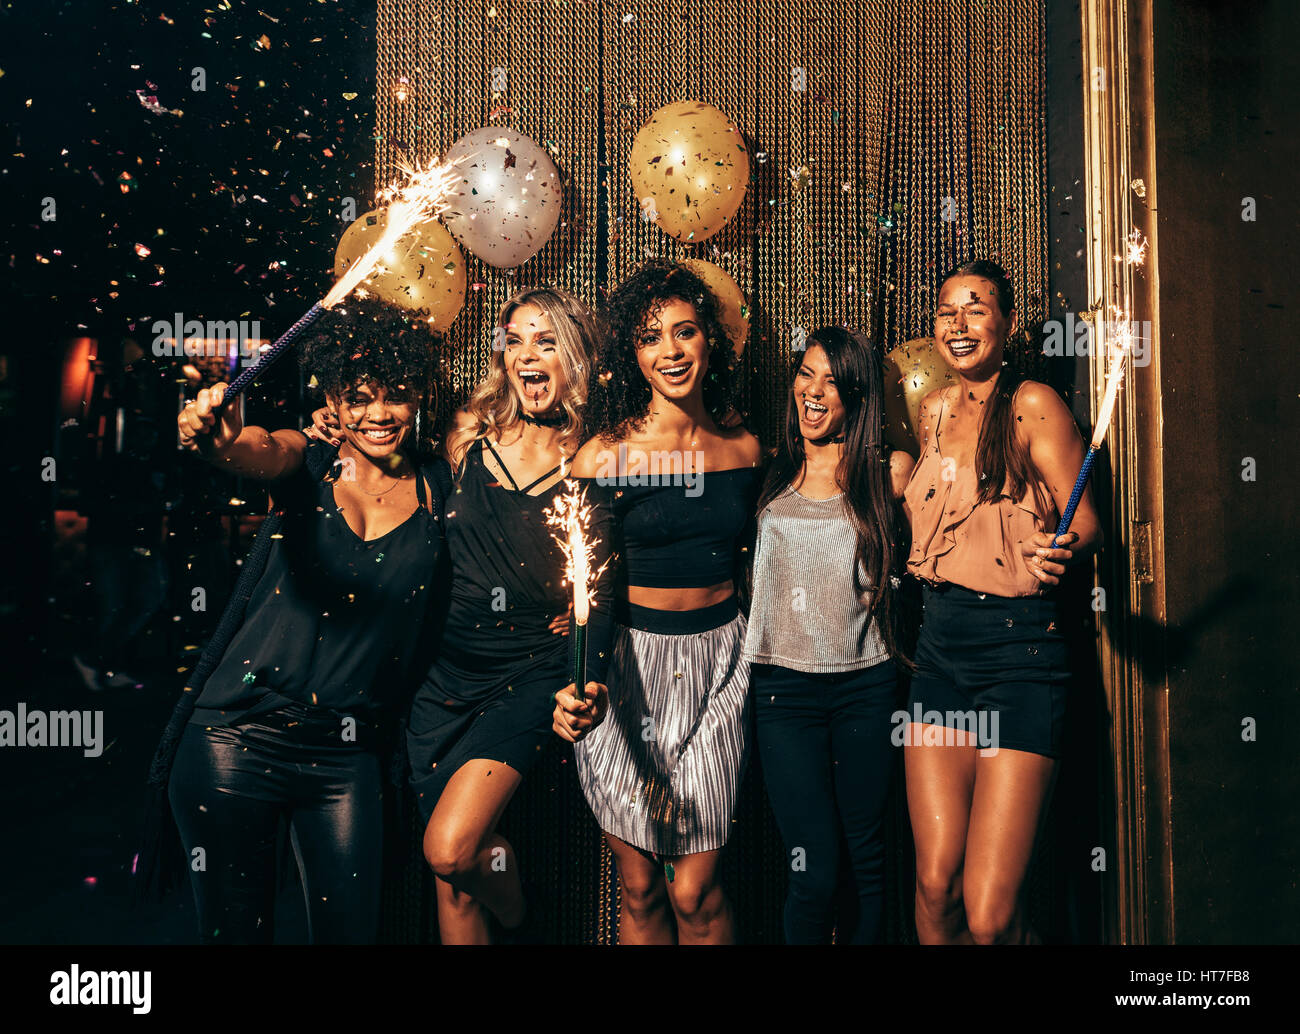 Shot of group of young women celebrating new years eve at the pub. Group of female friends with sparklers partying - Stock Image